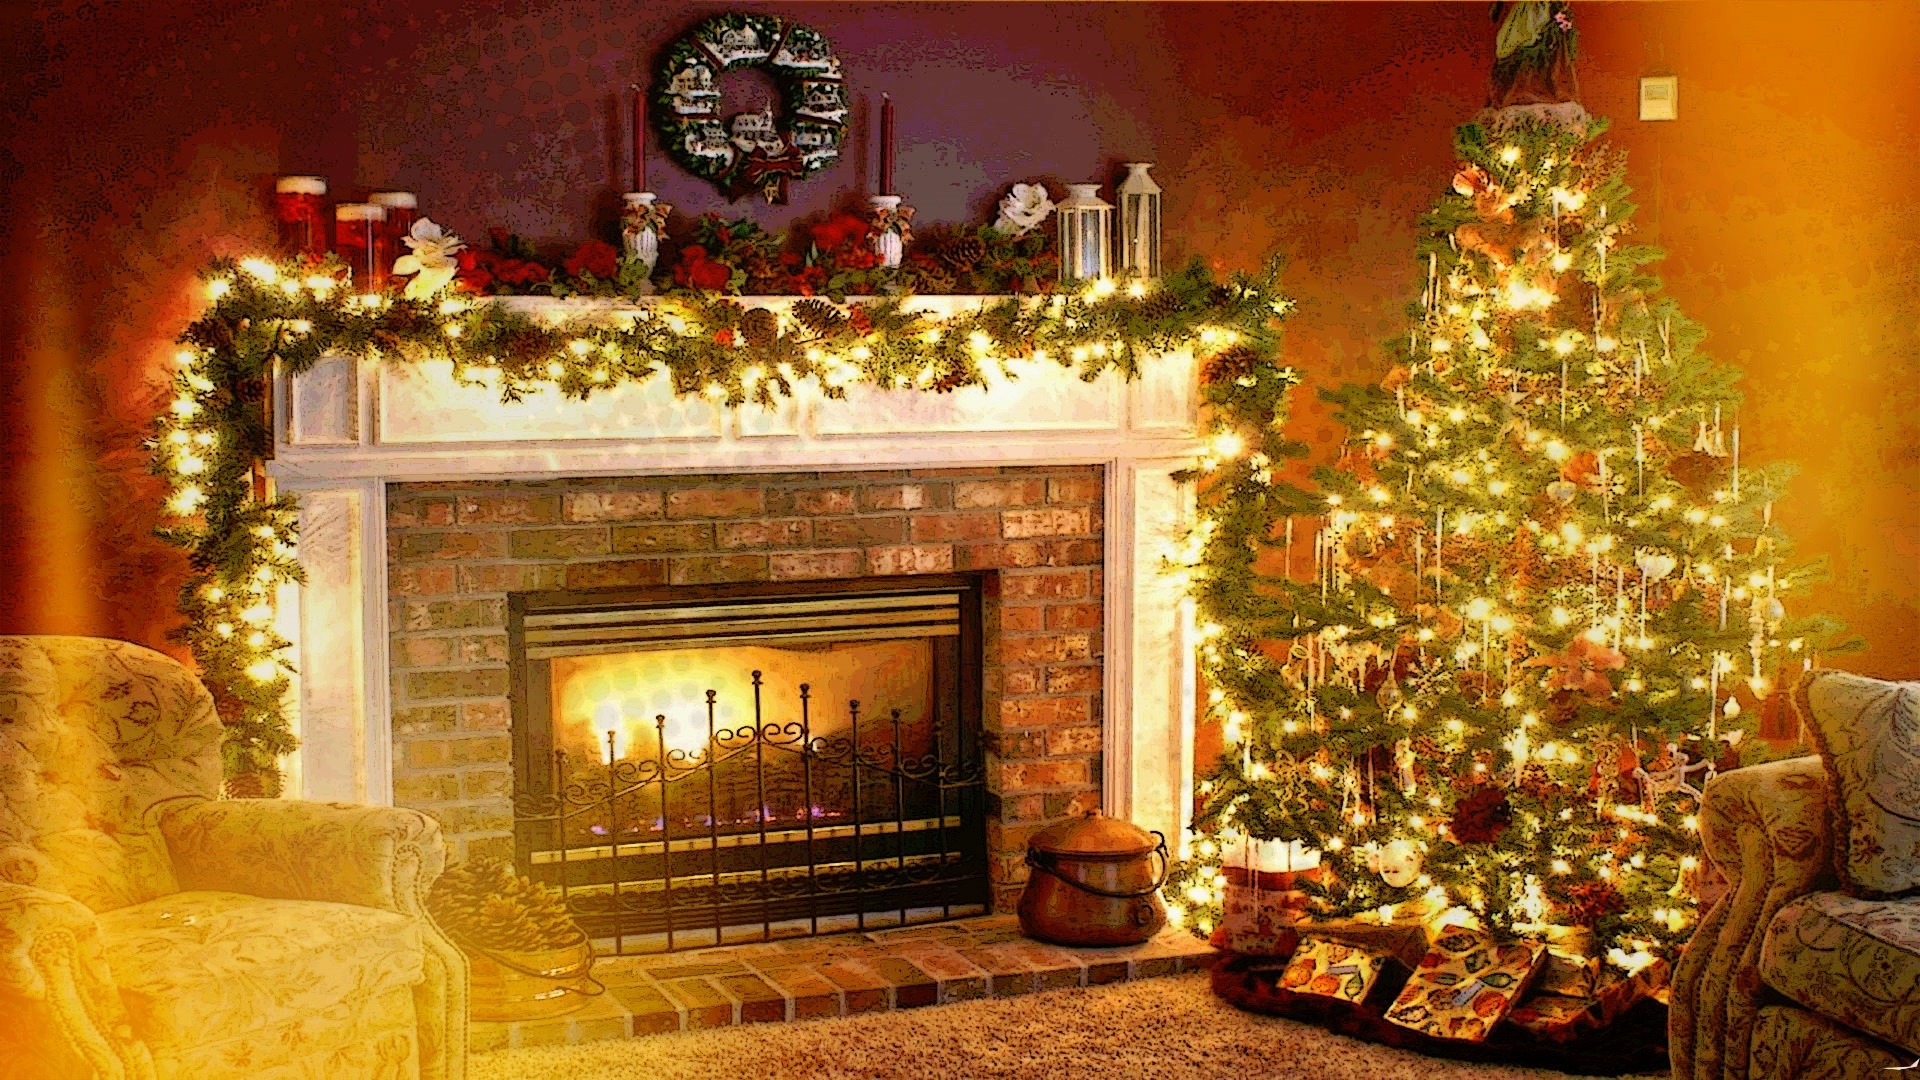 4K Christmas Fireplaces download wallpapers free HD